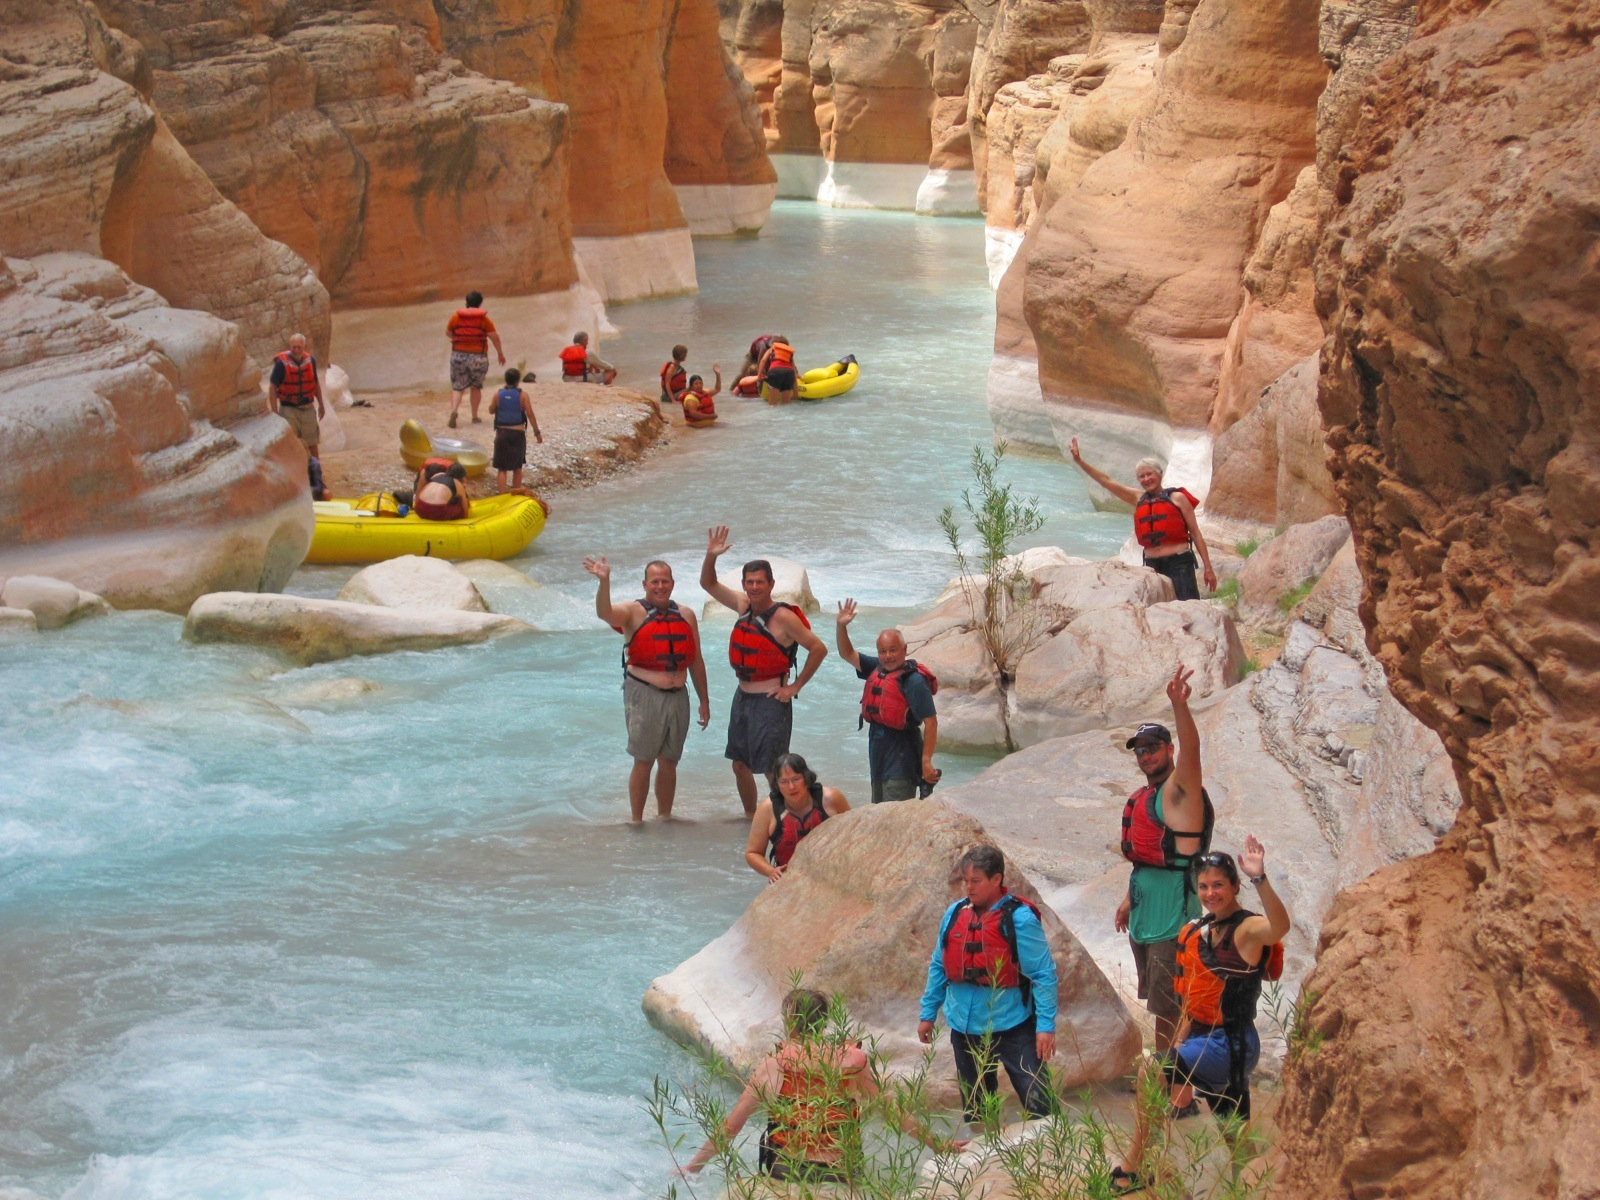 A large group of participants waves at the camera while wading in the calm, pale blue waters of Havasu Canyon, a welcome change from the rugged waters of the Colorado River.